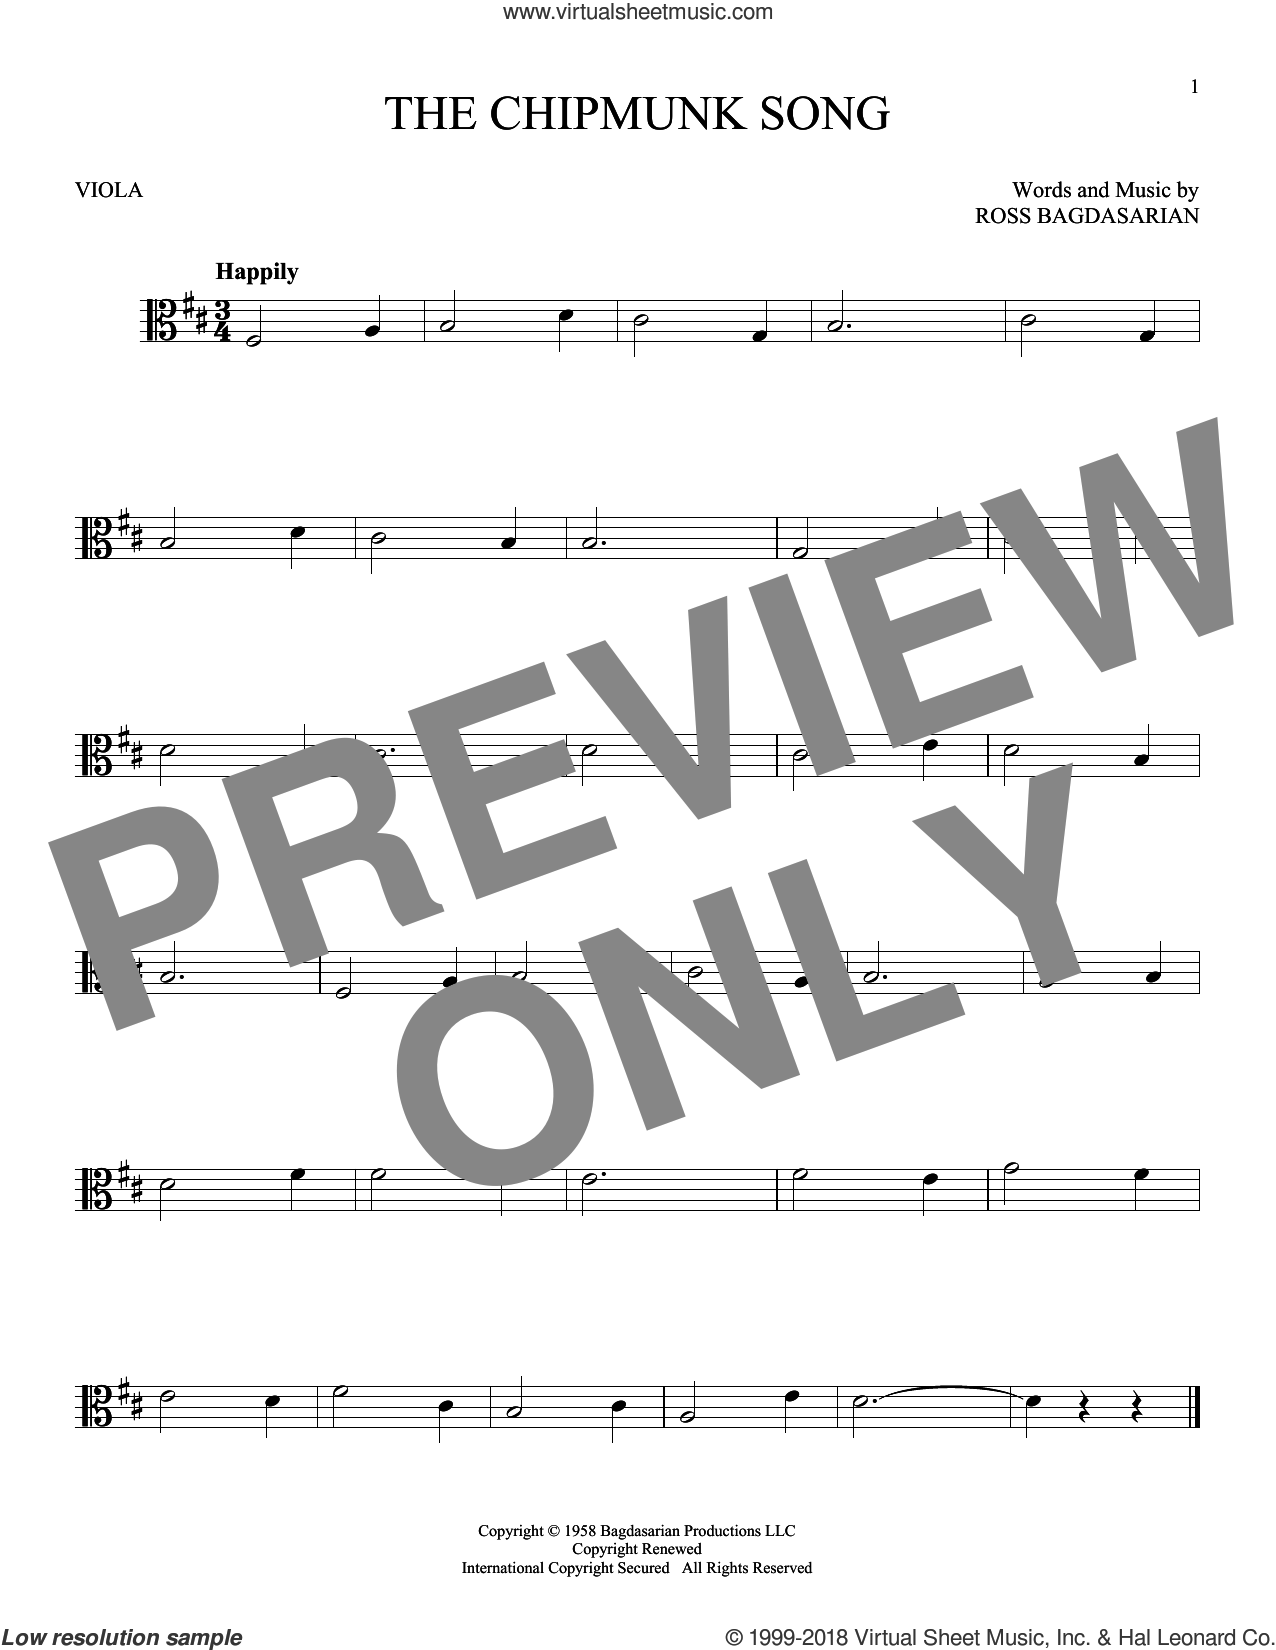 The Chipmunk Song sheet music for viola solo by Ross Bagdasarian, Alvin And The Chipmunks and The Chipmunks, intermediate skill level